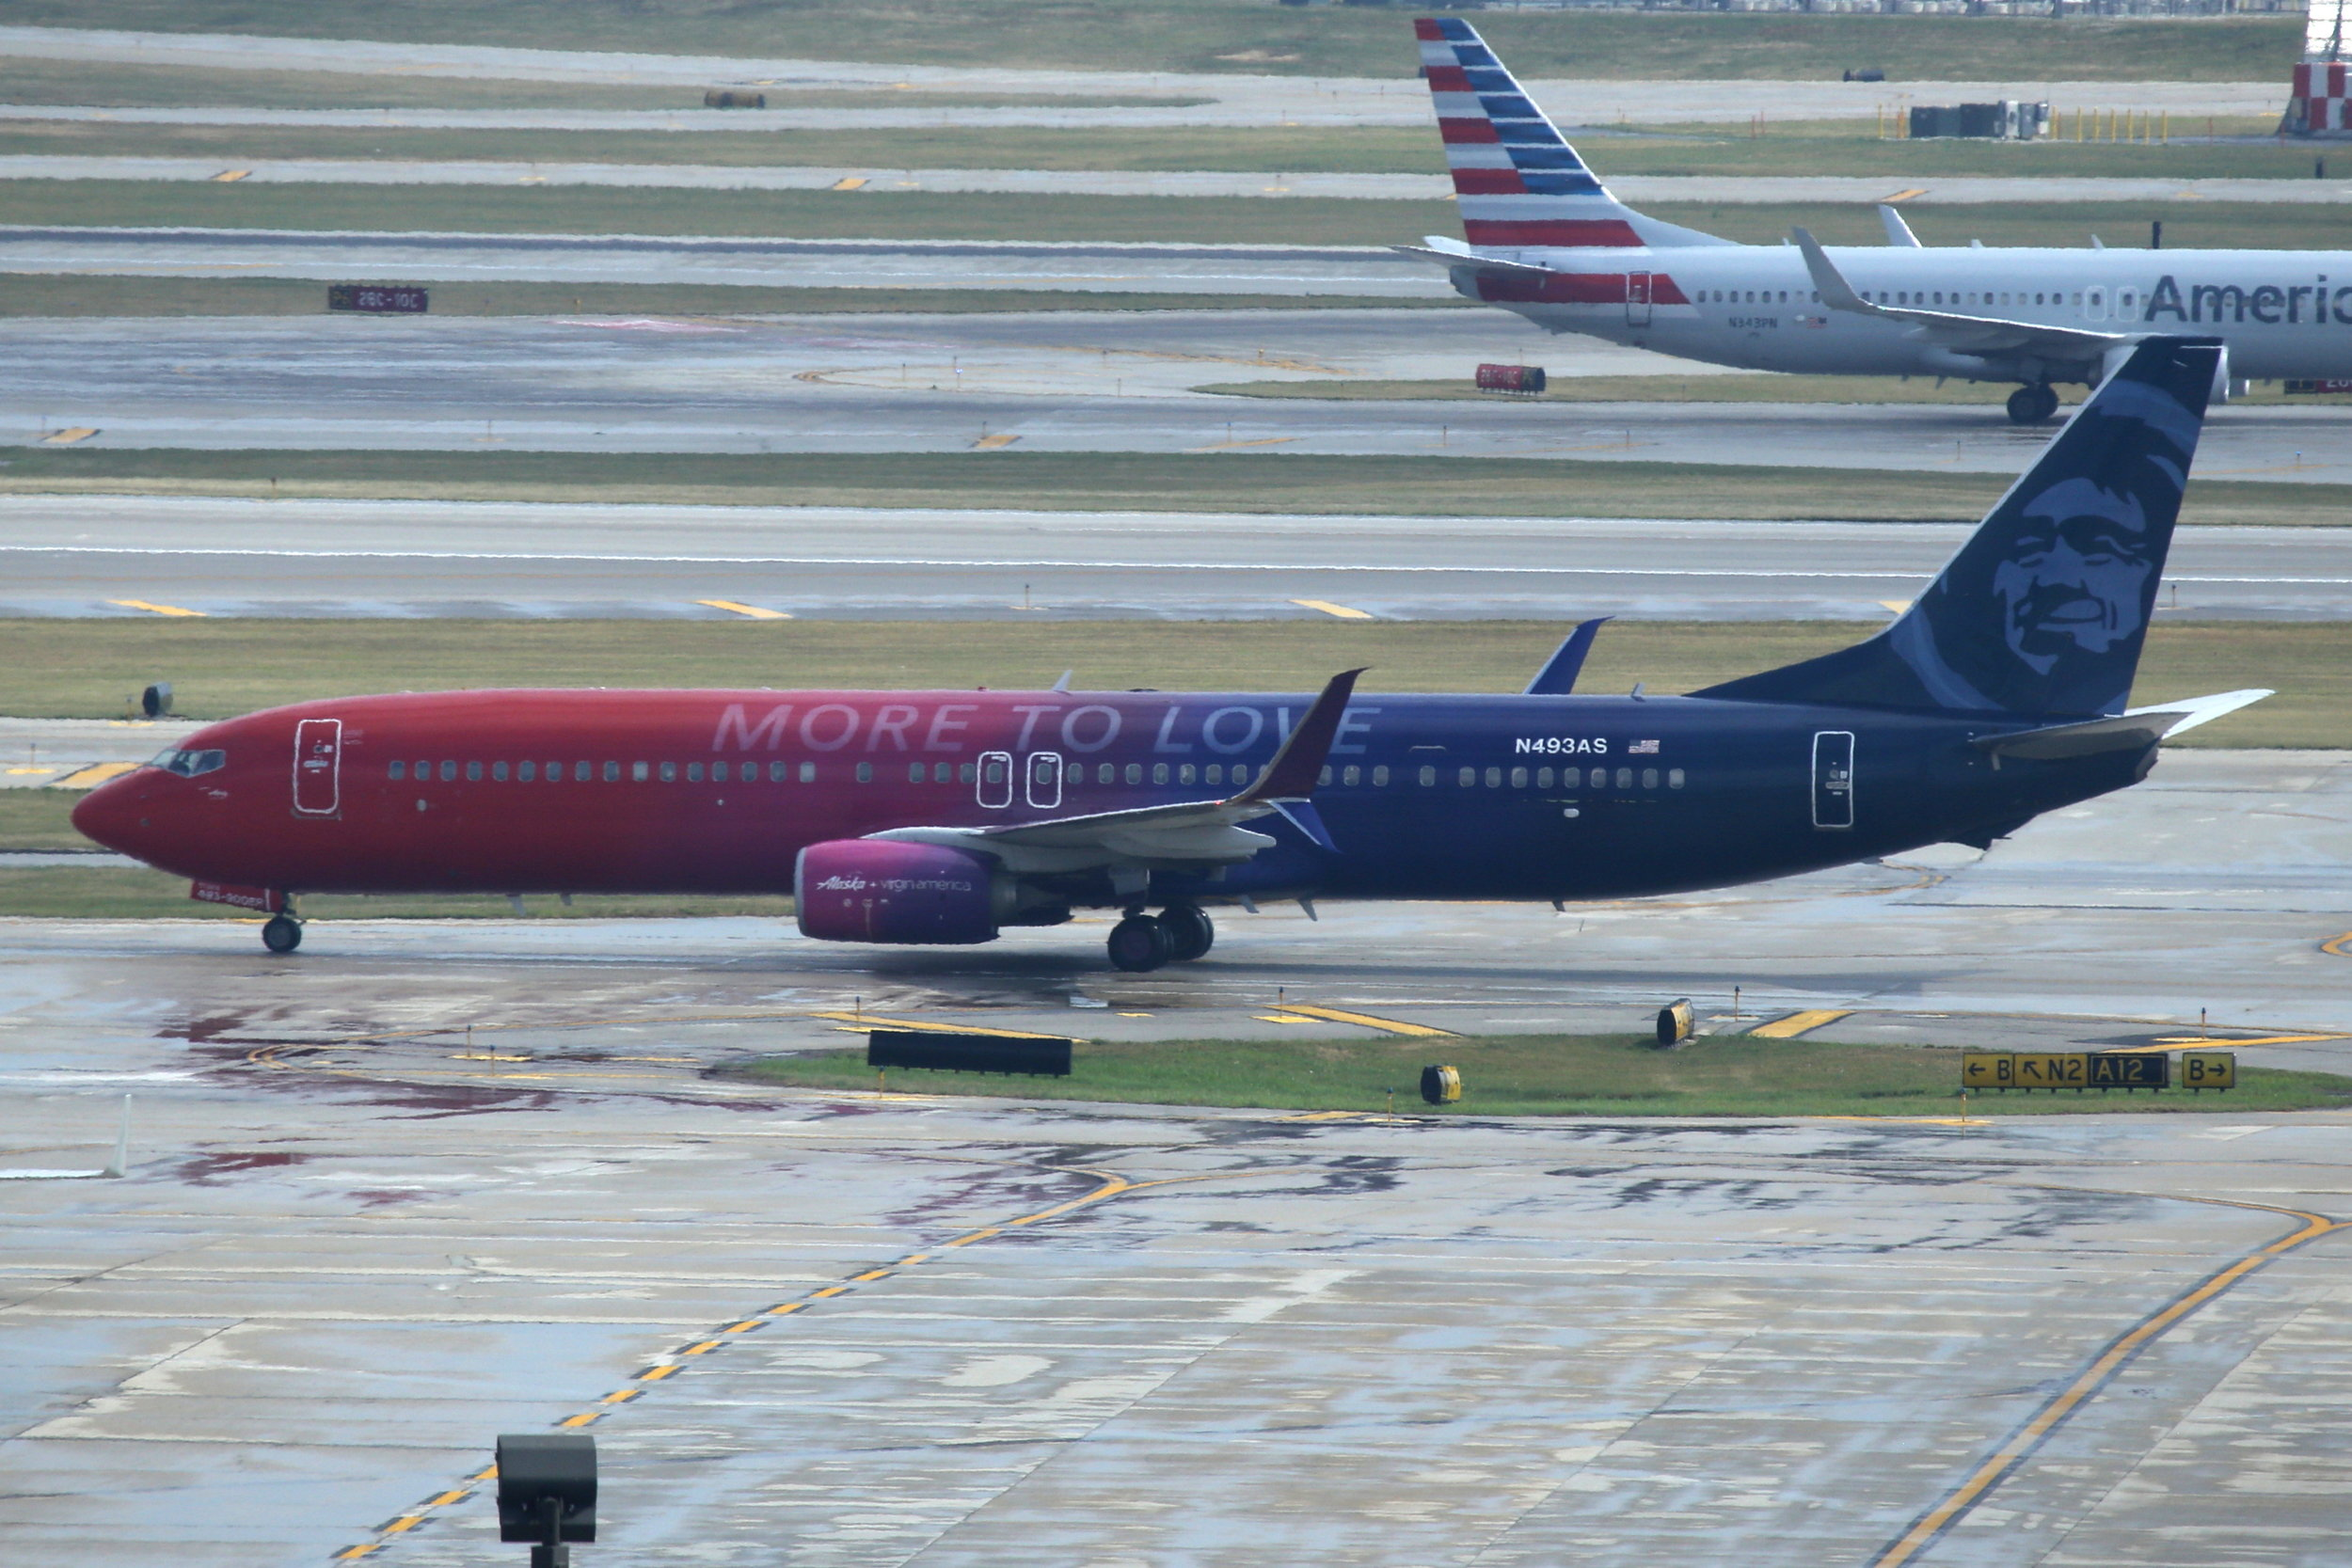 """N493AS Alaska B737-8W """"More to love"""" taken from the Hilton Hotel at Chicago O'Hare Airport 21st July 2018 by John Wood"""